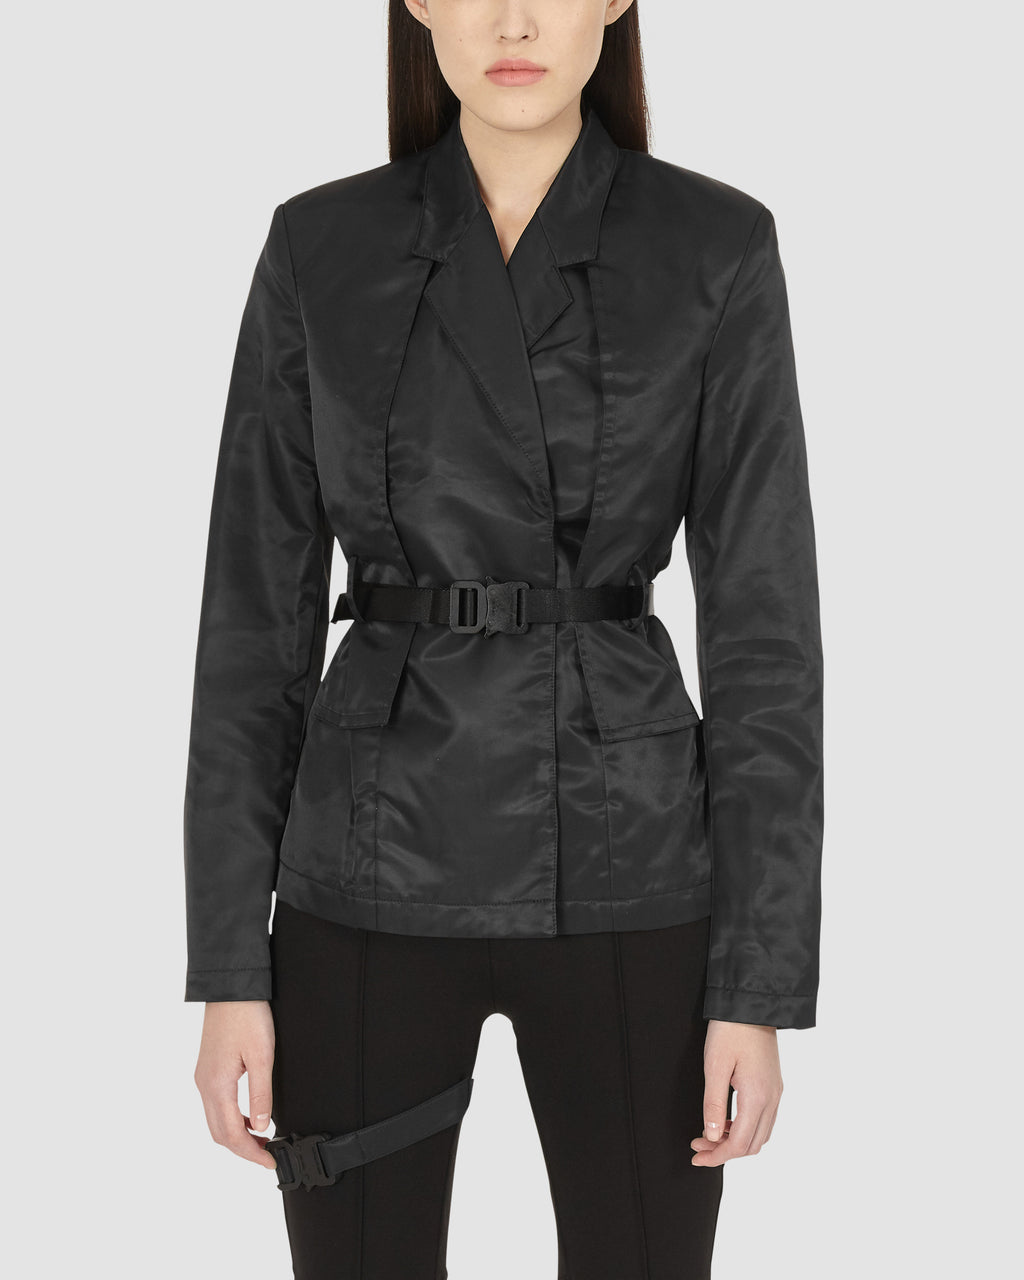 BLACK NYLON BLAZER